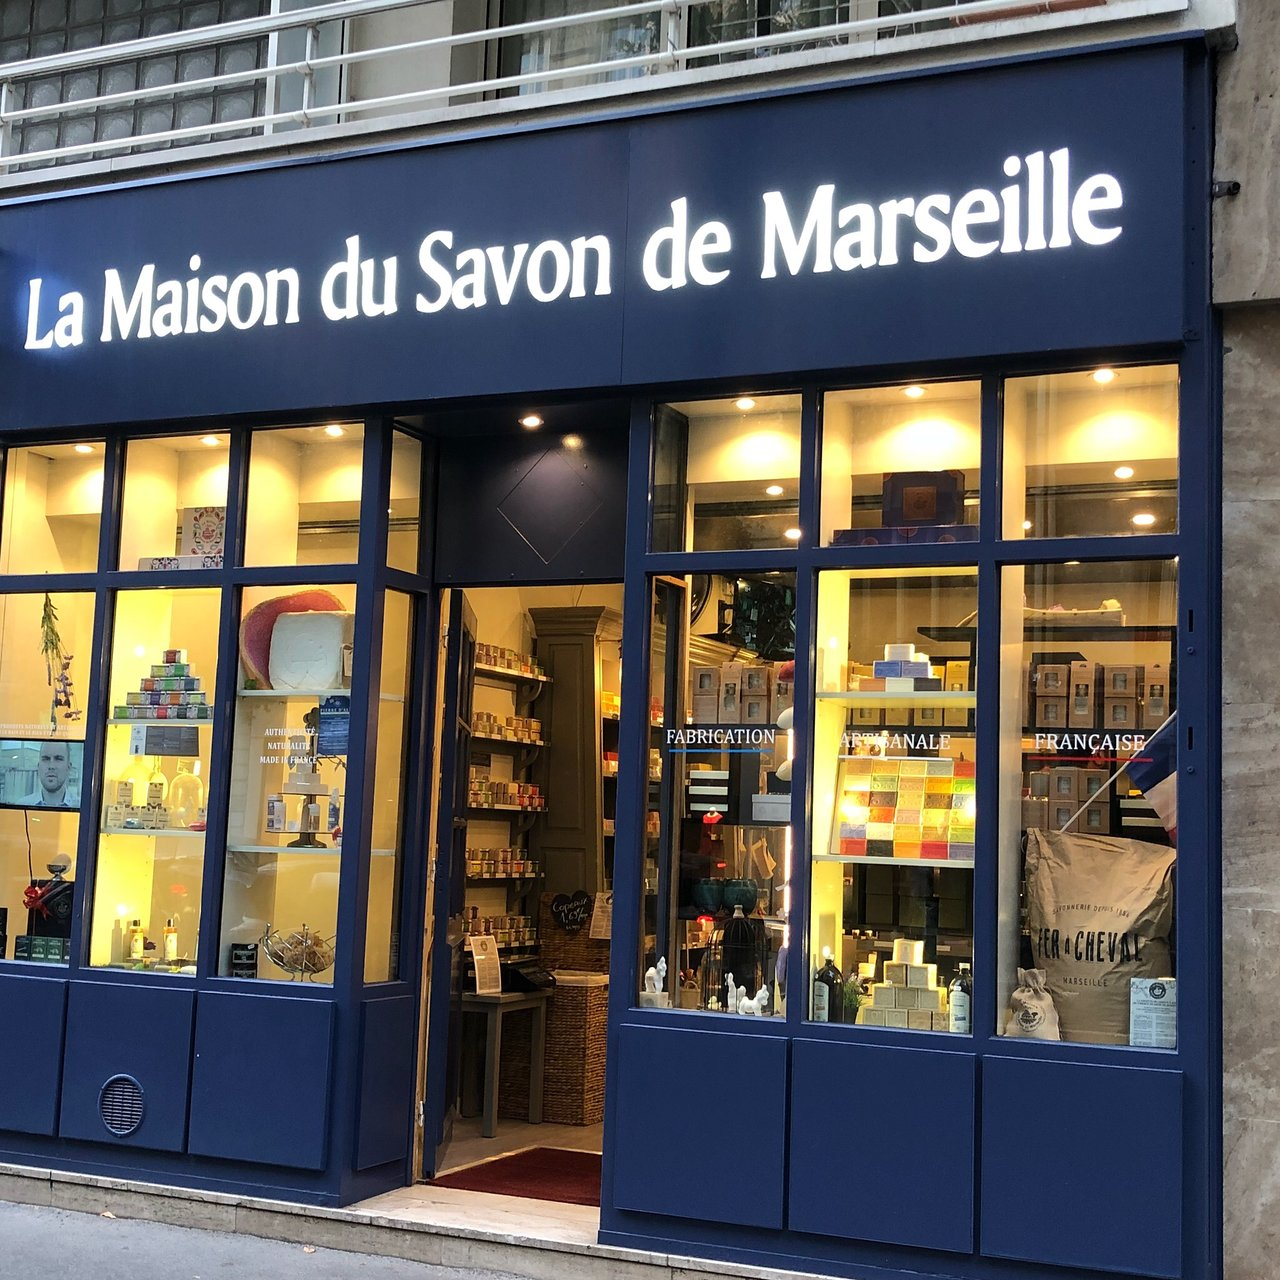 Savon De Marseille En Paillette la maison du savon de marseille (paris) - 2020 all you need